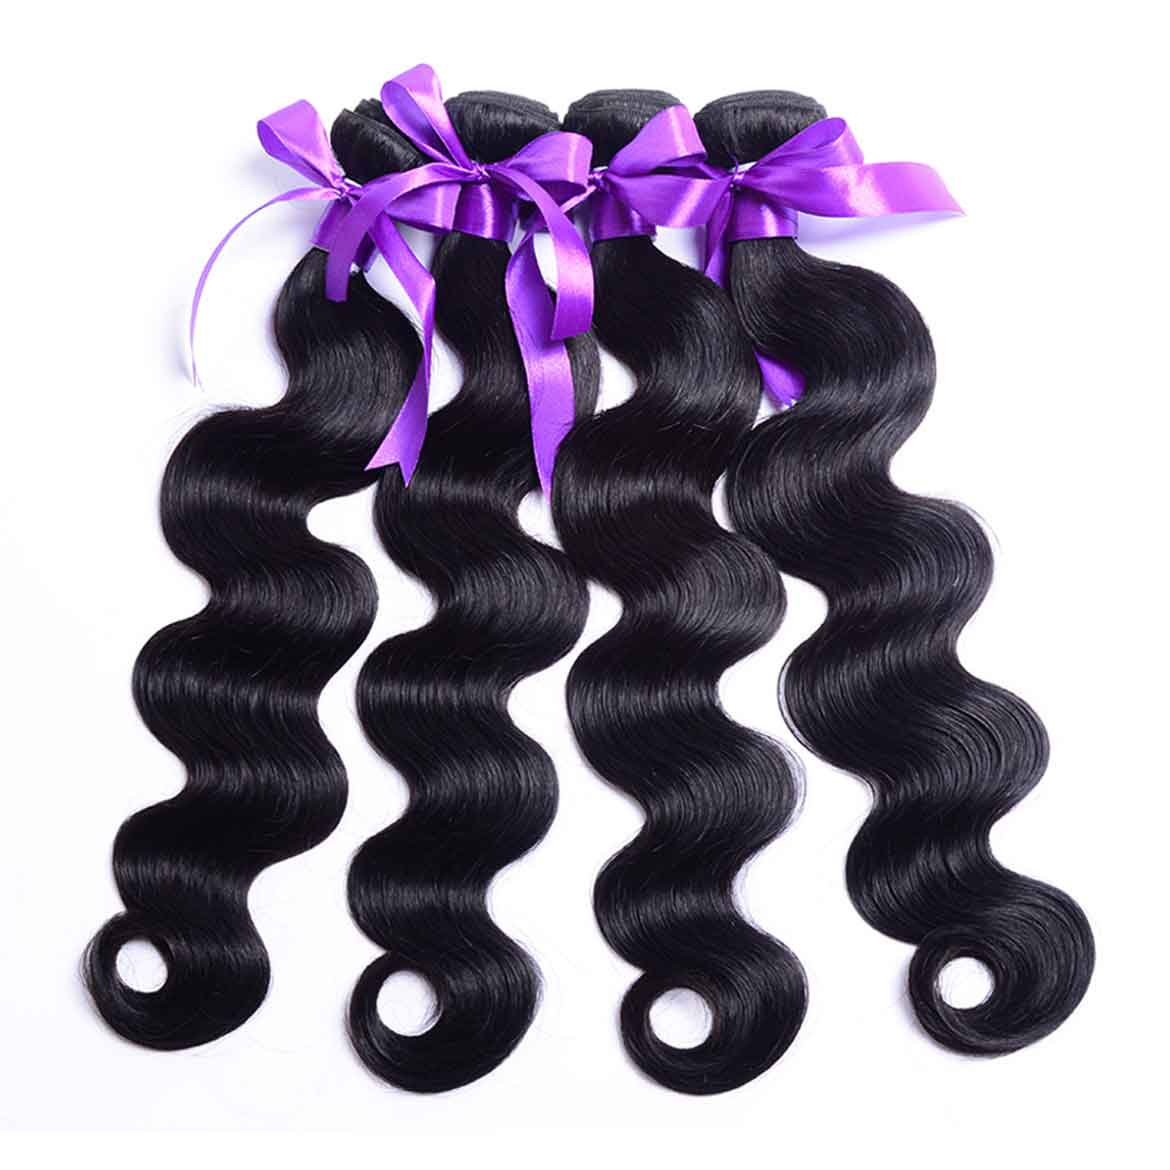 WorldNewHair-Malaysian-Body-Wave-Virgin-Hair-4pcs-lot-Unprocessed-Human-Hair-Weave-Hot-Sale-Malaysian-Virgin-Hair-Body-Wave3